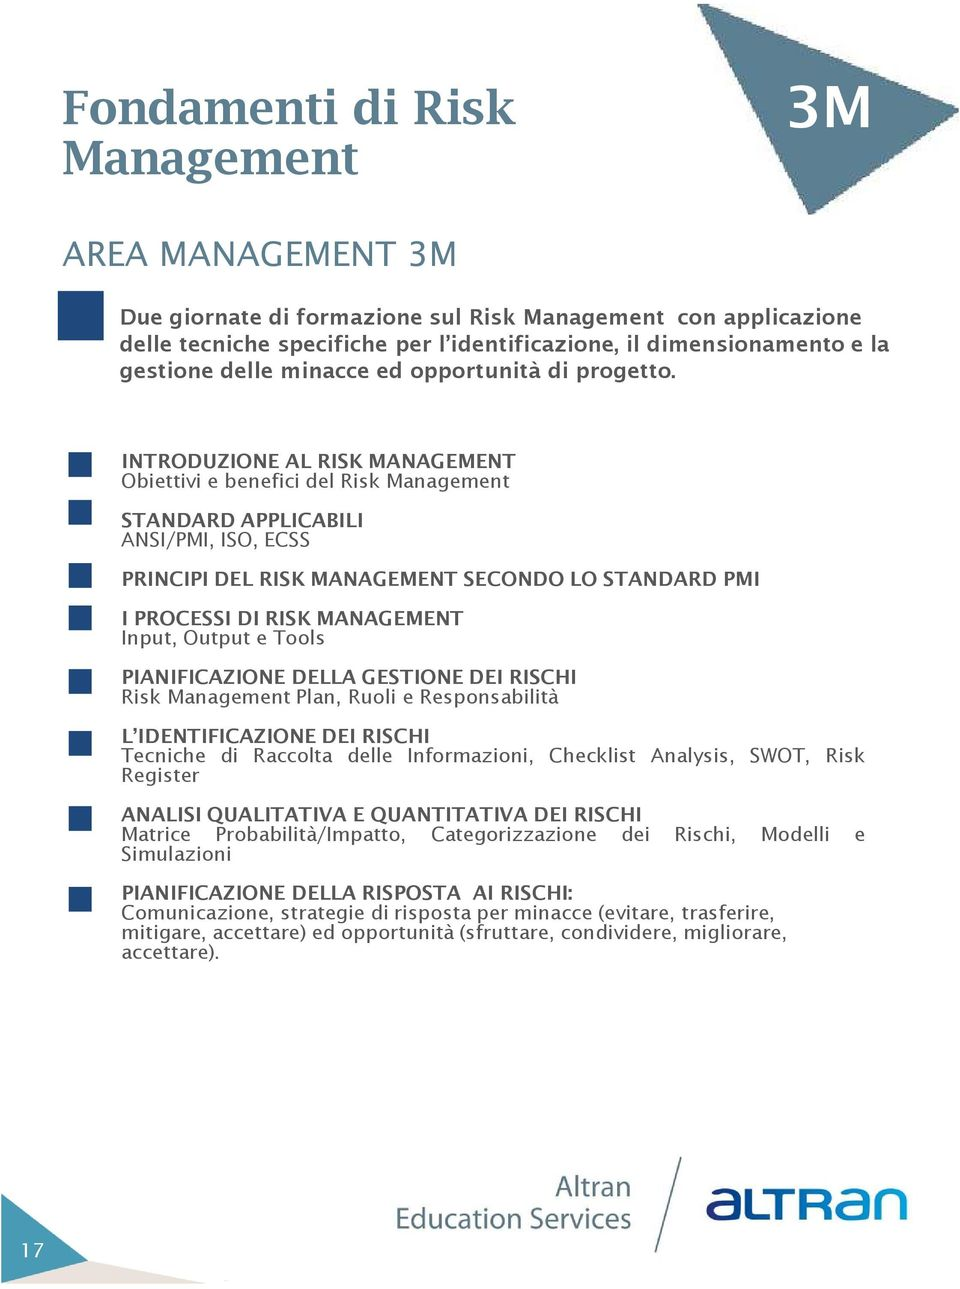 INTRODUZIONE AL RISK MANAGEMENT Obiettivi e benefici del Risk Management STANDARD APPLICABILI ANSI/PMI, ISO, ECSS PRINCIPI DEL RISK MANAGEMENT SECONDO LO STANDARD PMI I PROCESSI DI RISK MANAGEMENT